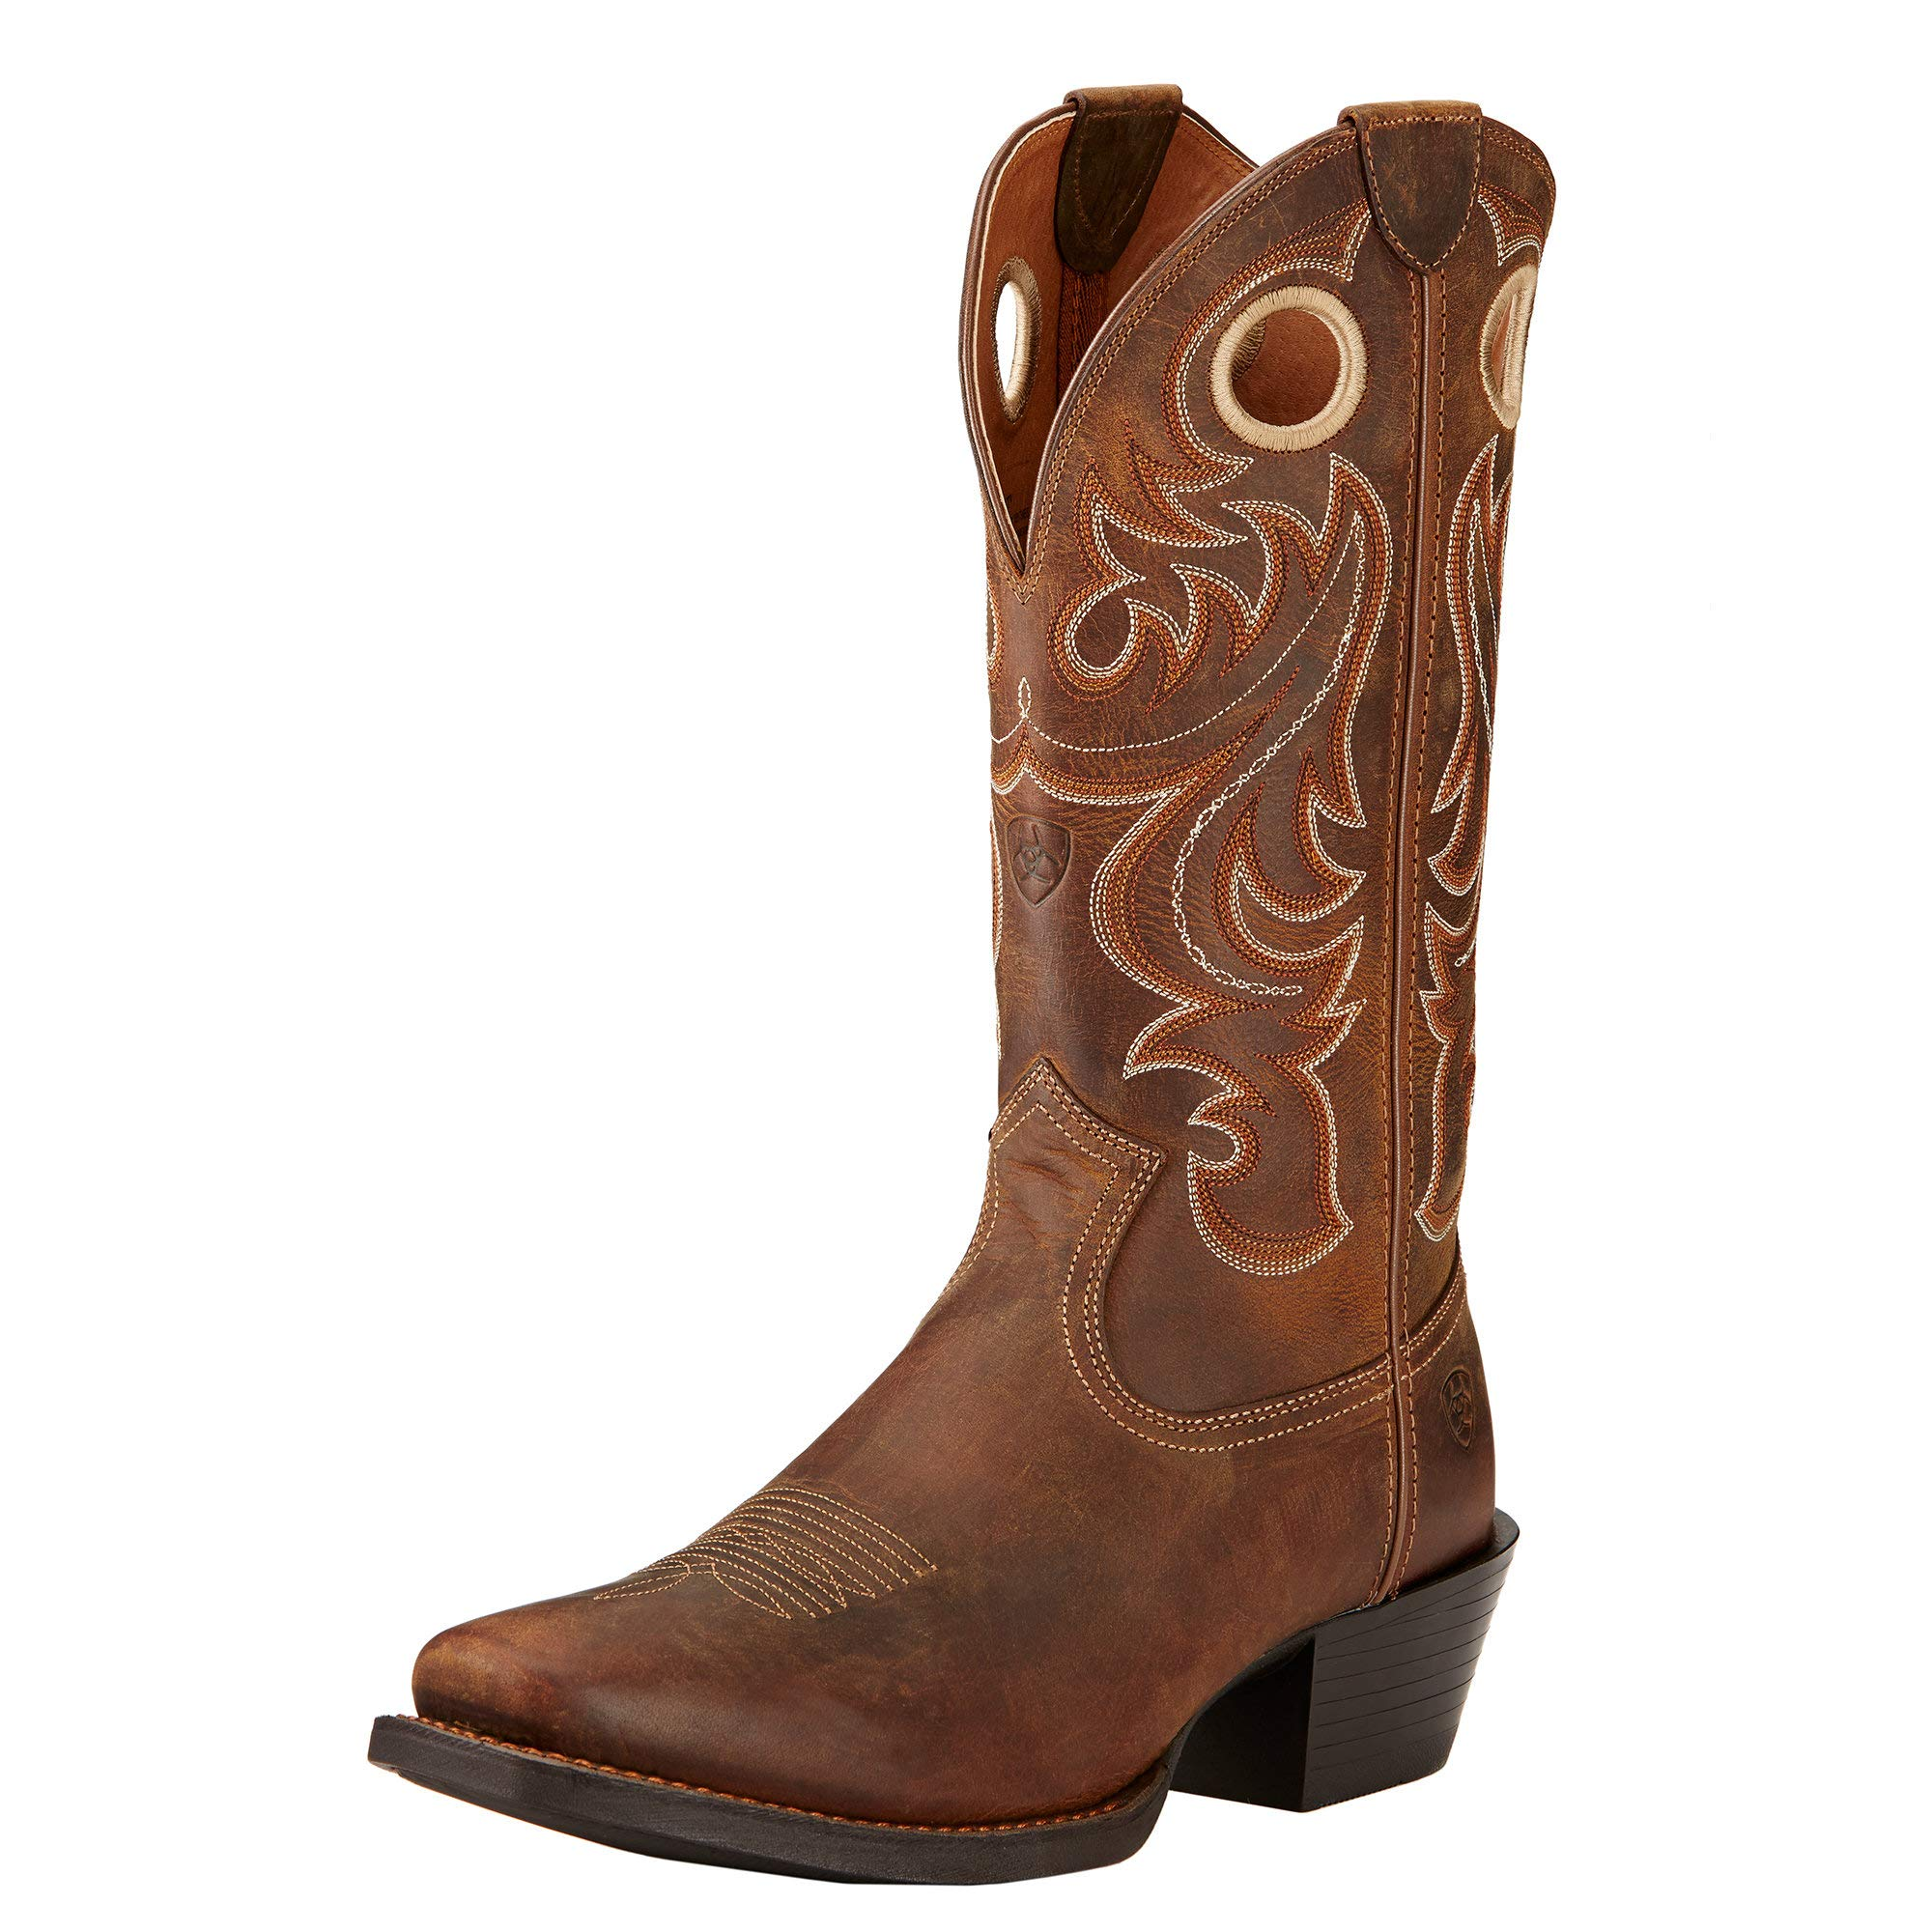 ARIAT Men's Sport Square Toe Western Boot Powder Brown Size 15 M Us